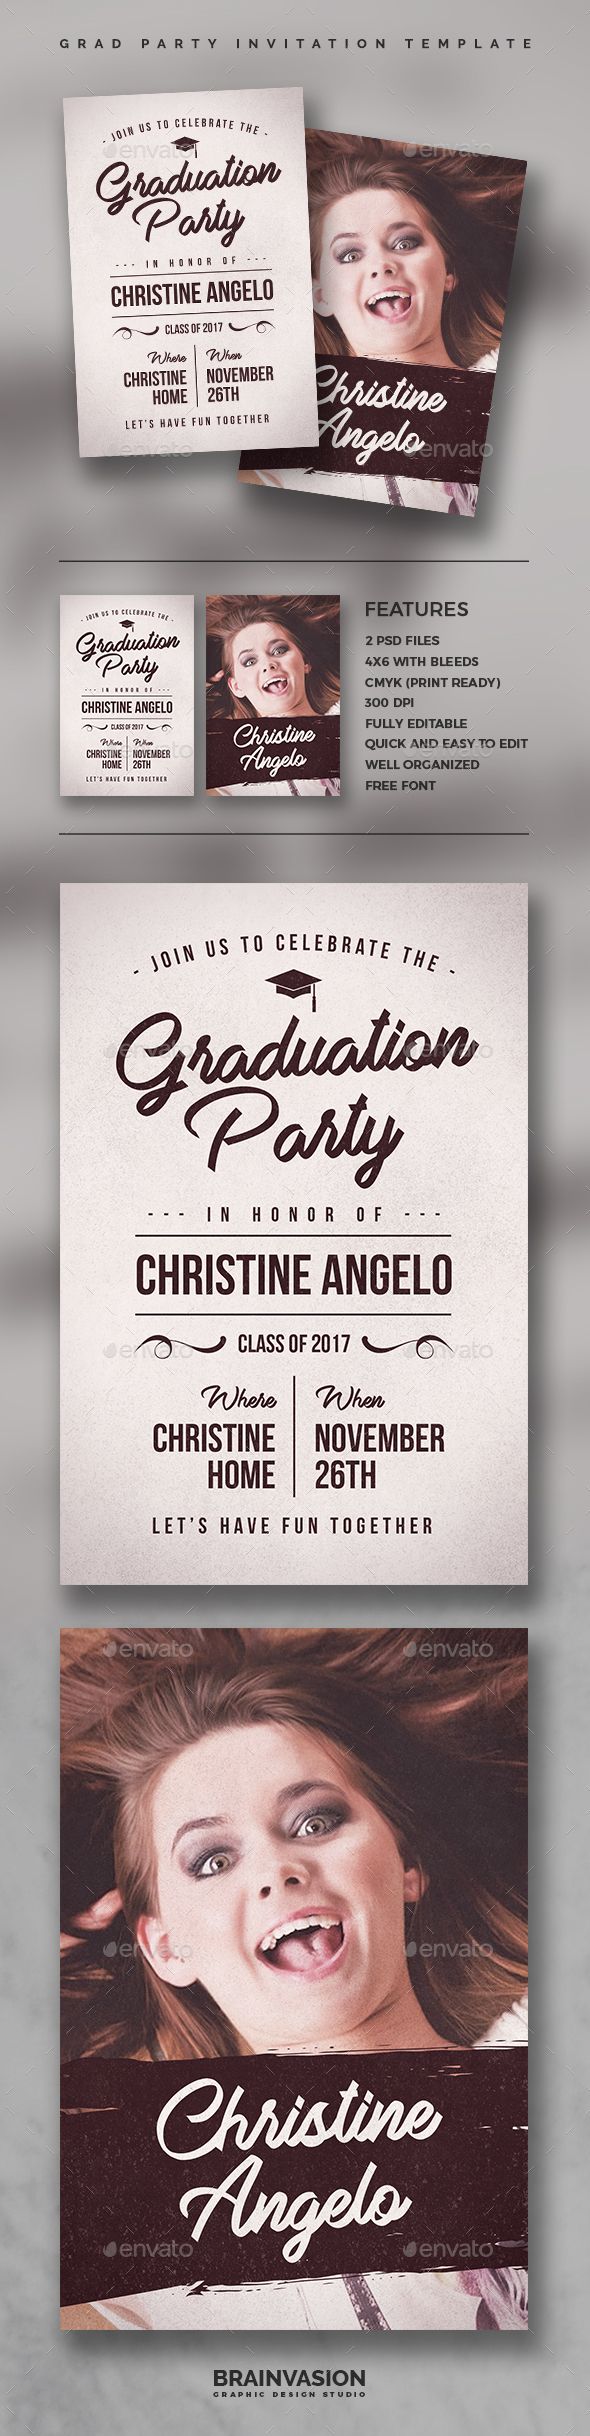 Graduation Party Invitation Template - Invitations Cards & Invites